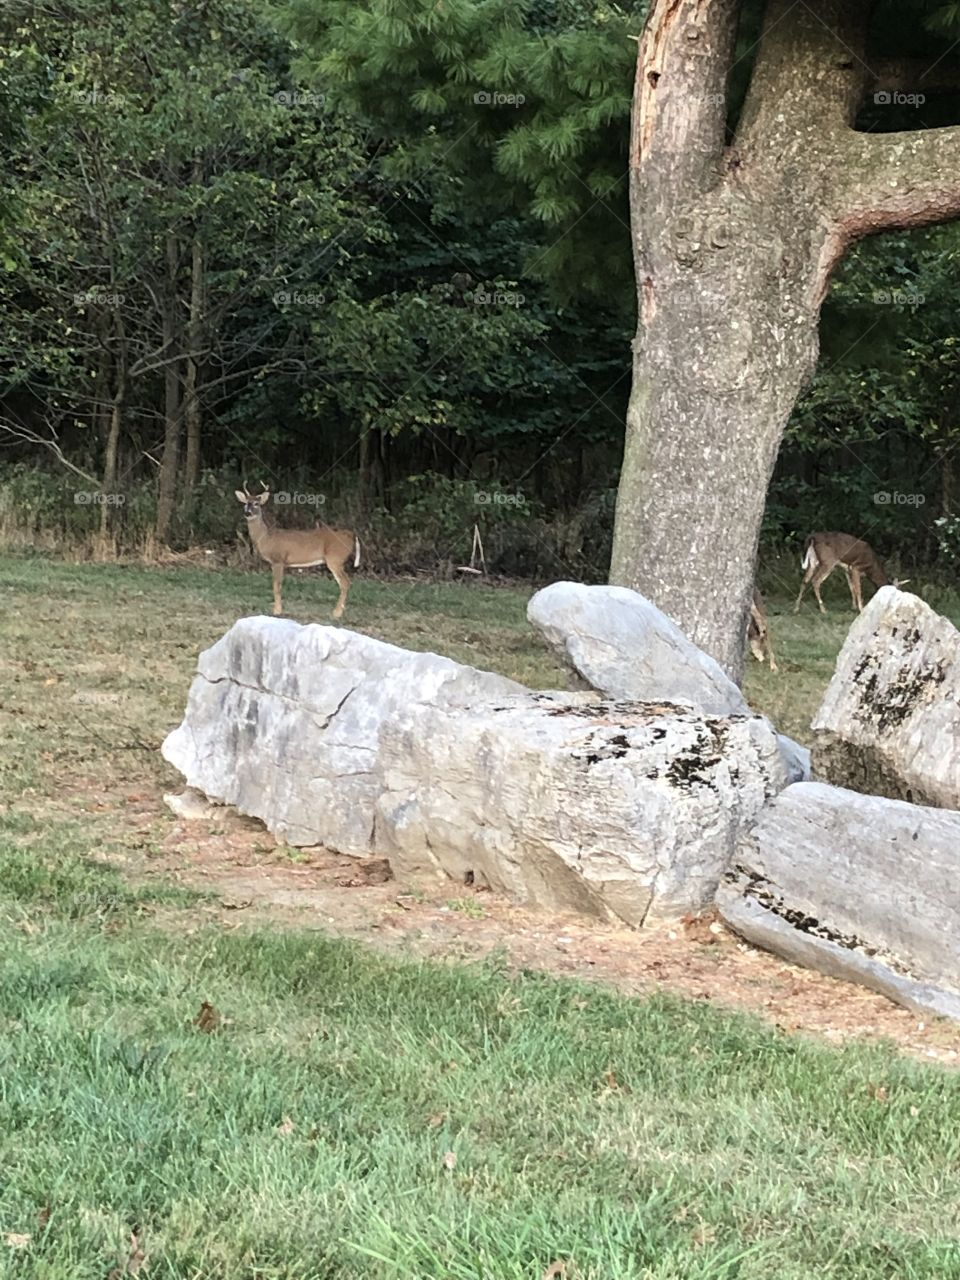 Small Herd of deer eating along wooded area